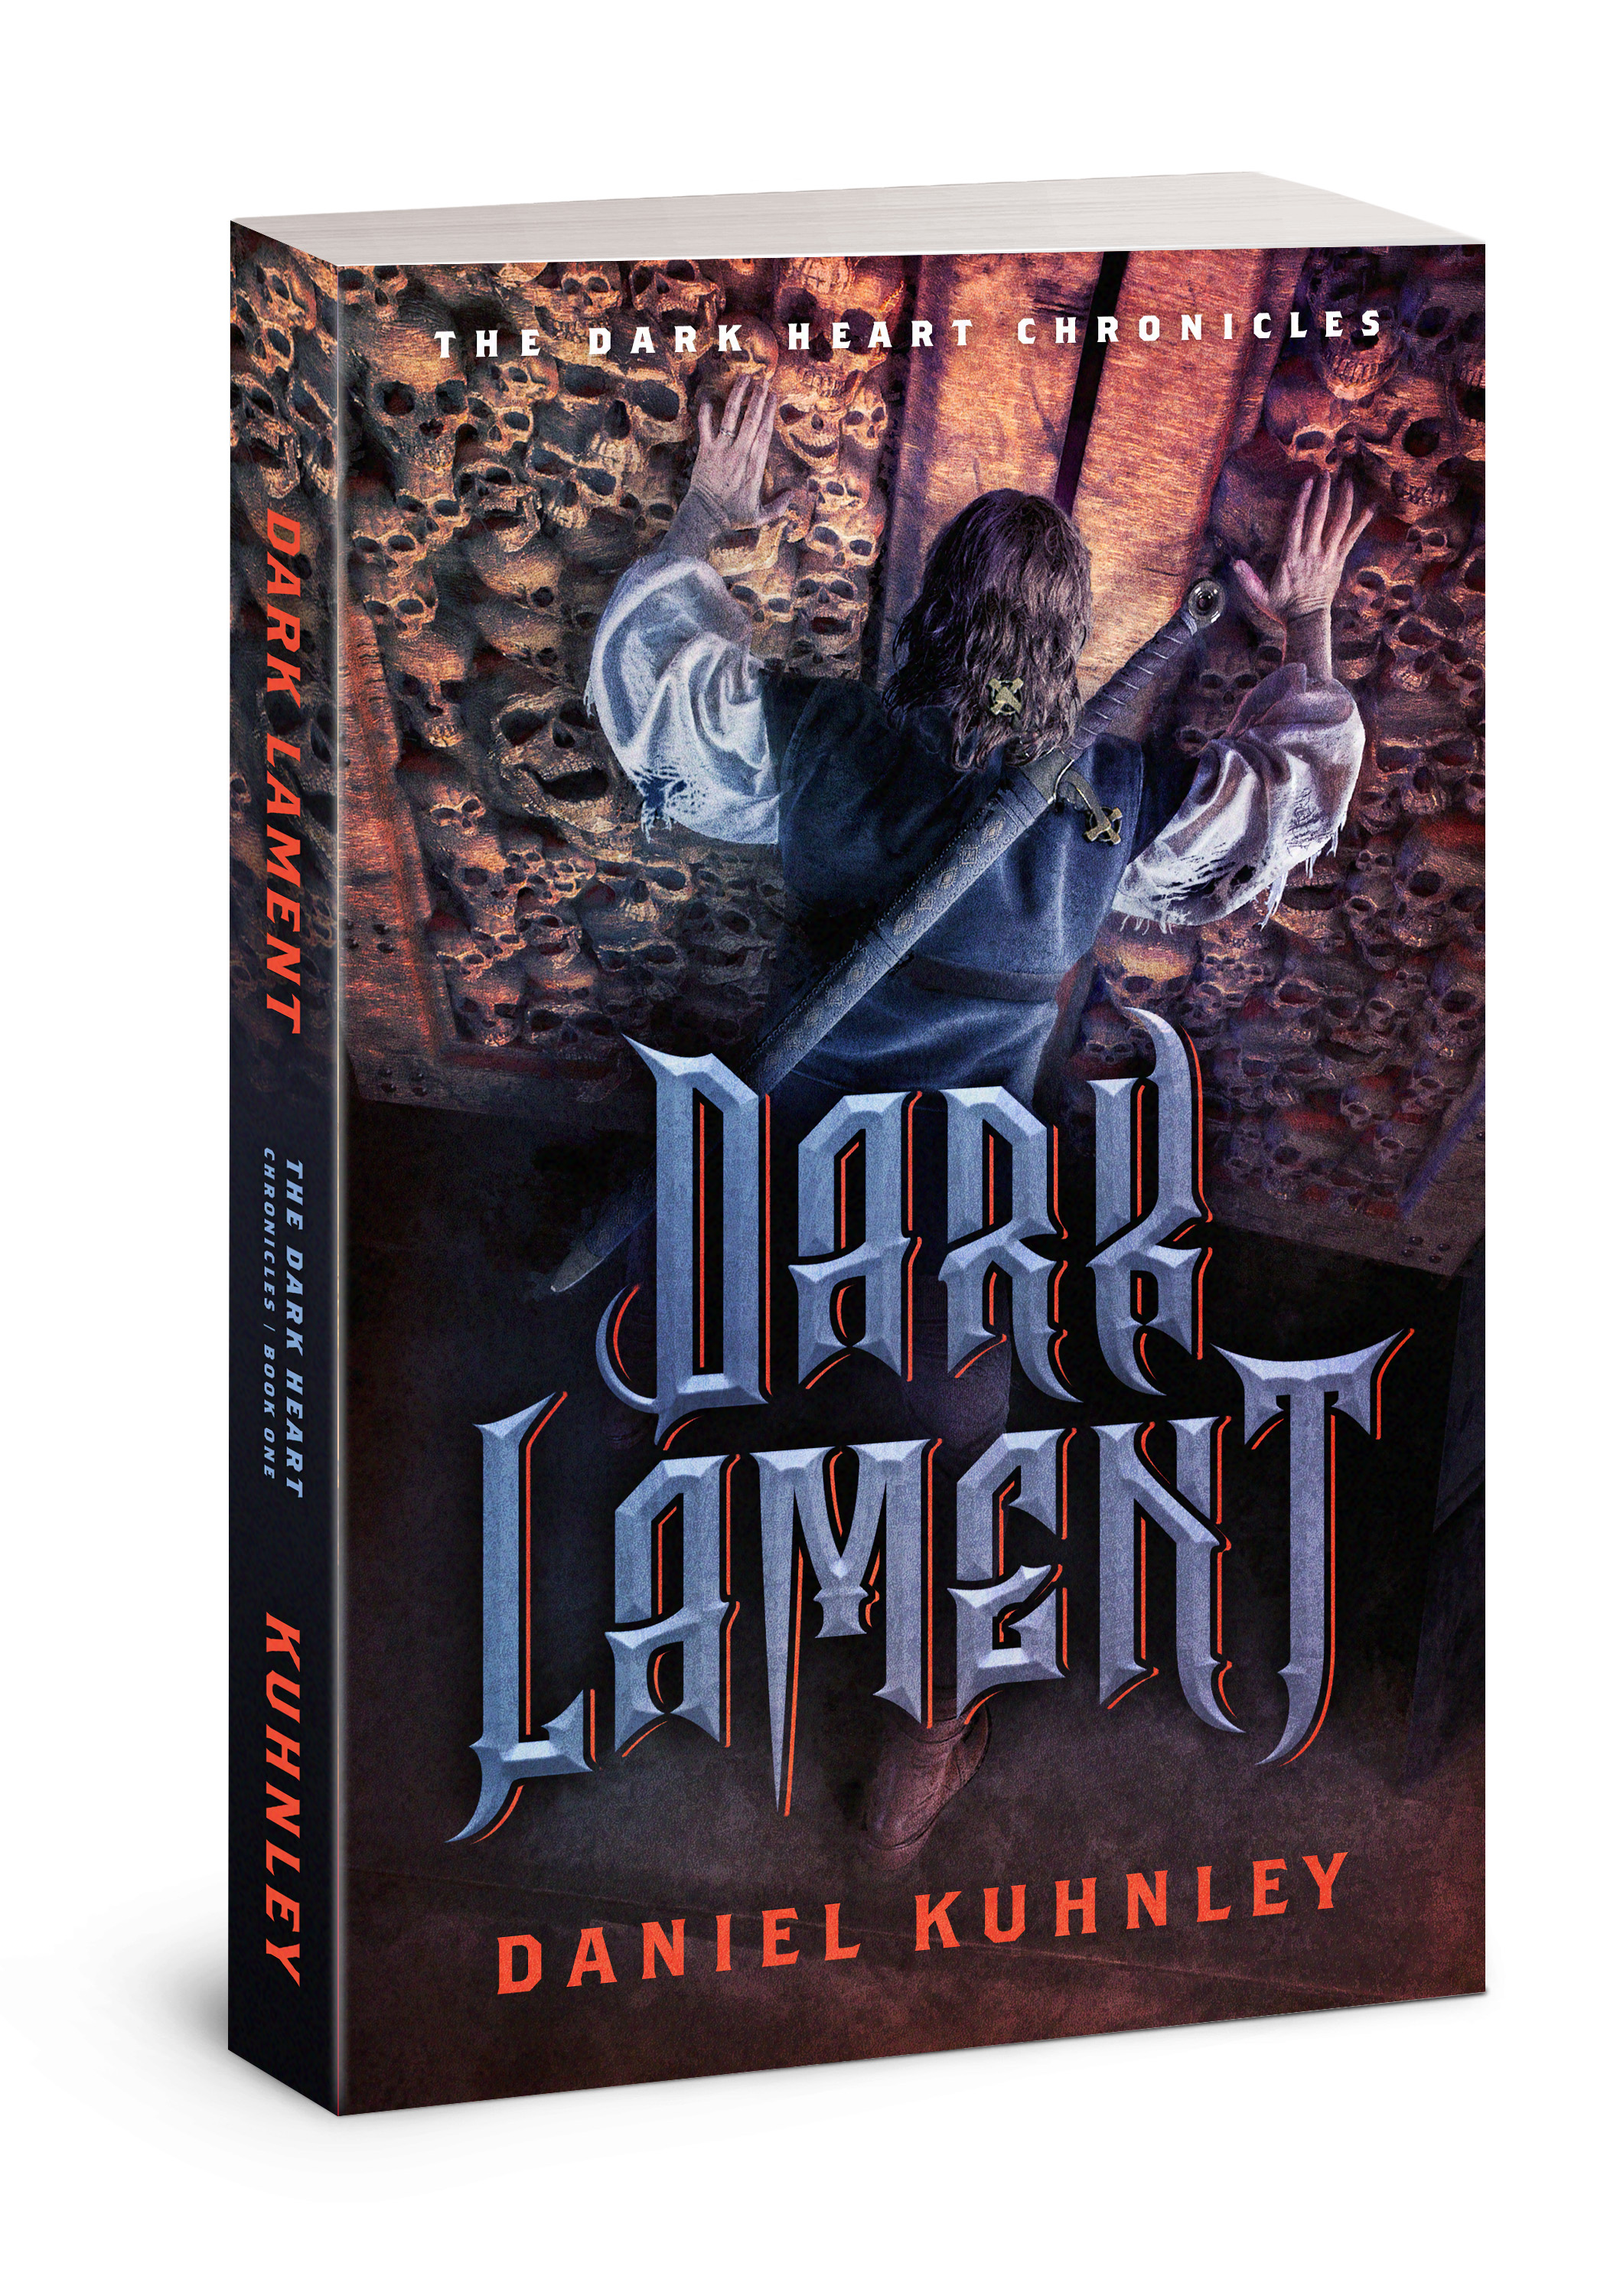 Paperback book cover art for Daniel Kuhnley's fantasy novel Dark Lament - features a man with a sword pushing doors made of human skulls